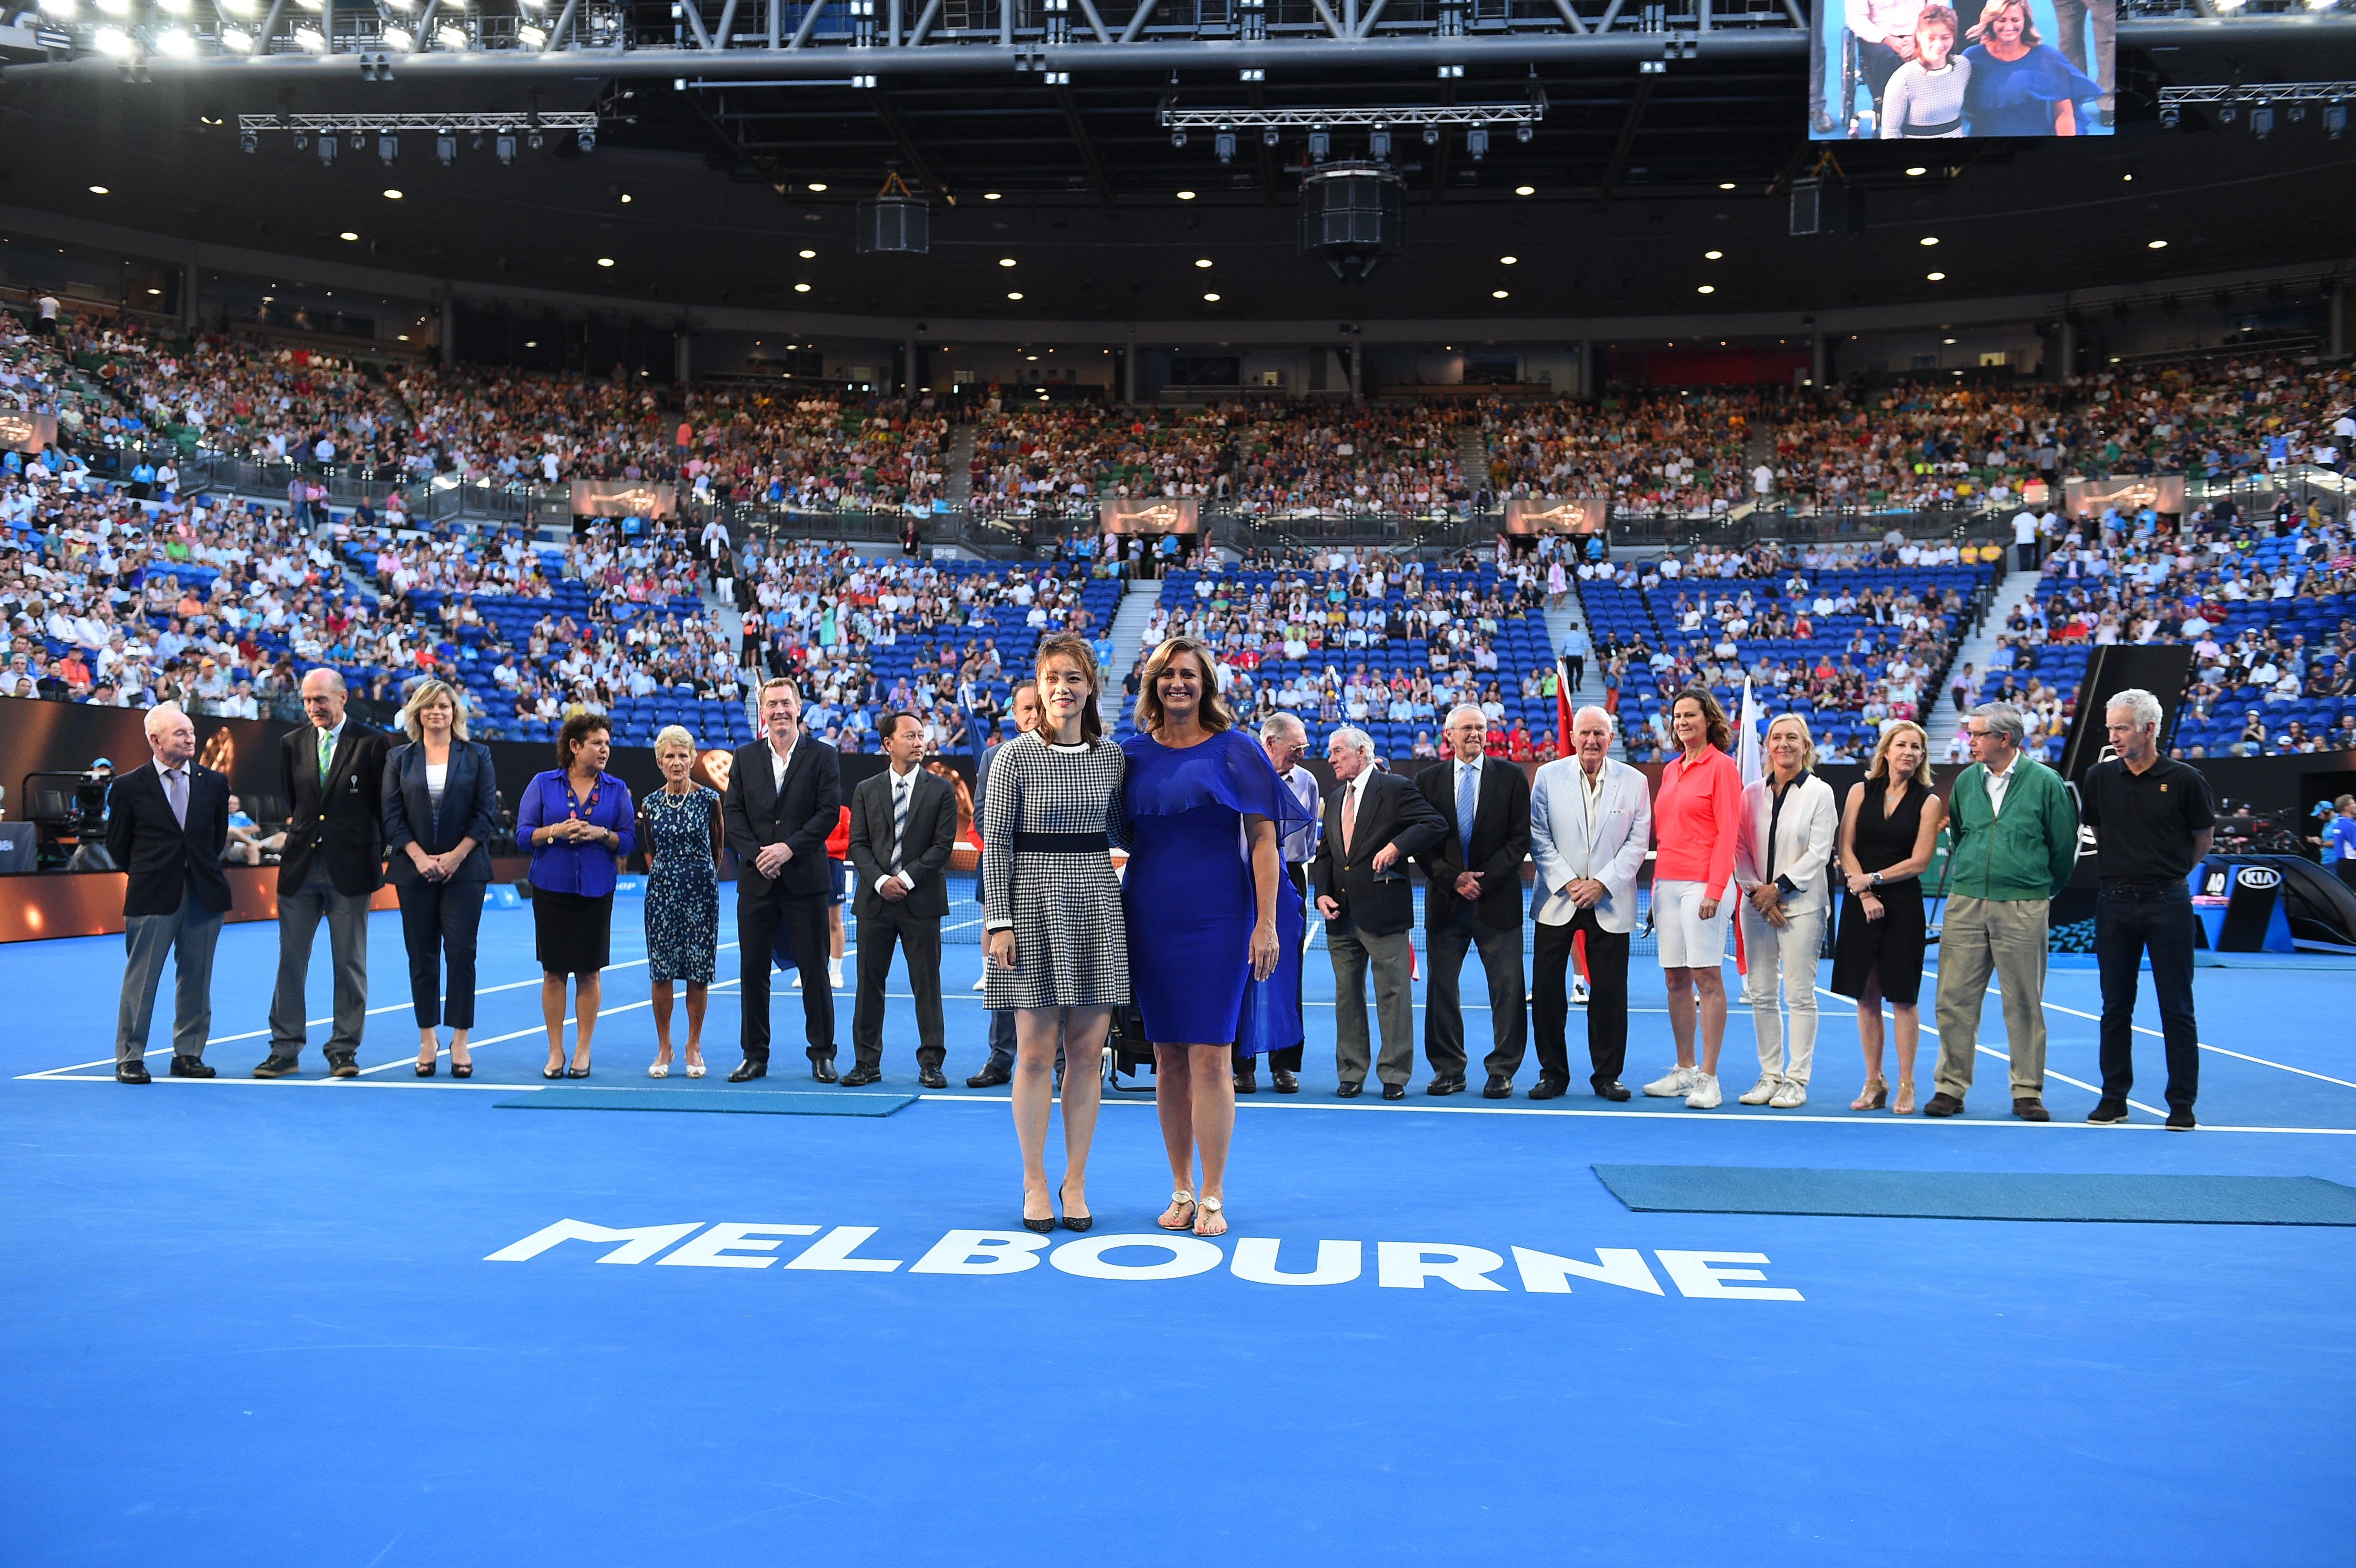 Li Na and Mary Pierce at the ceremony held for their induction into the Tennis Hall of Fame at the 2019 Australian Open